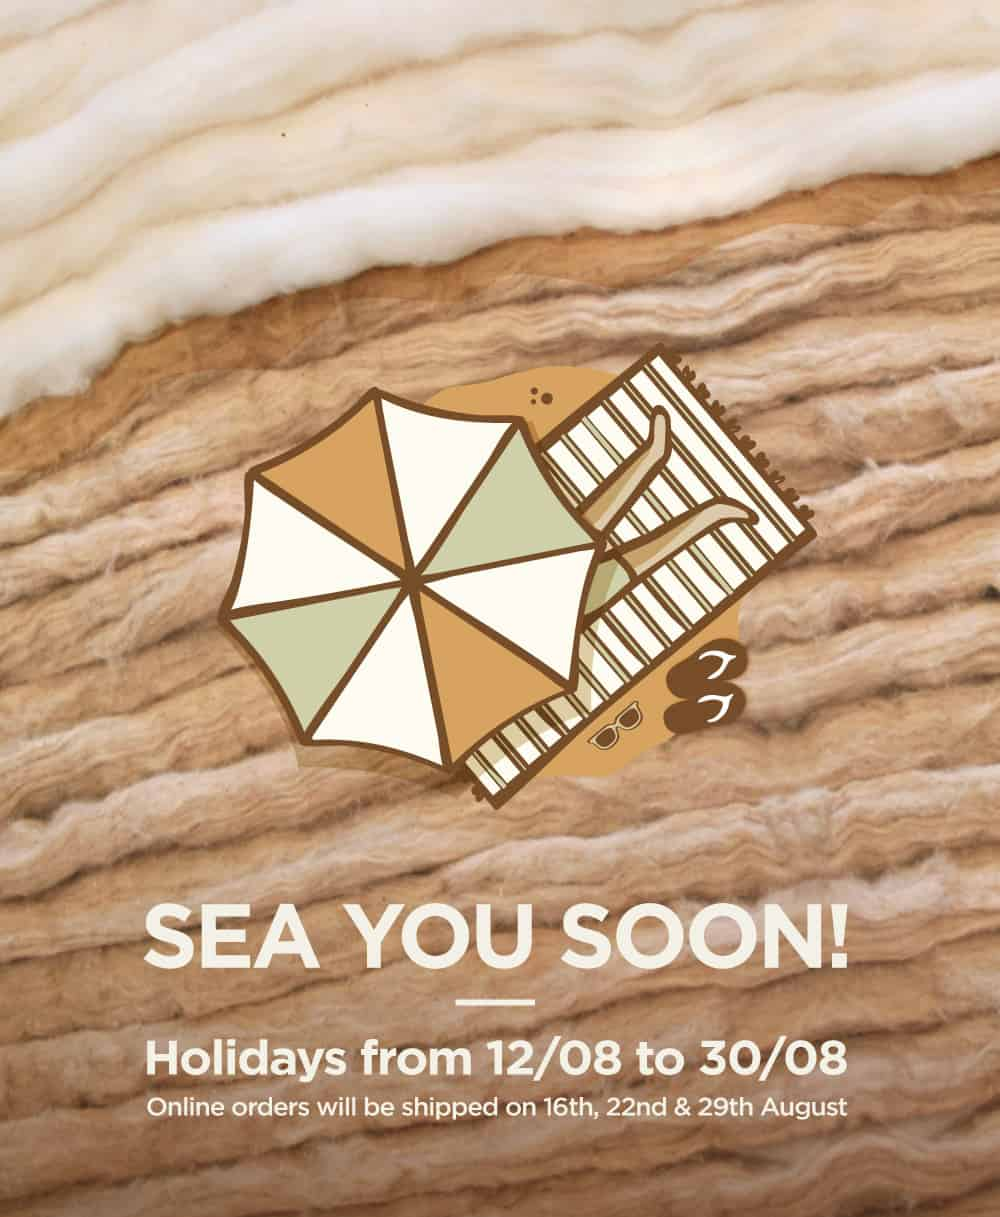 ¡Sea you soon! Holidays from 12 to 30 August